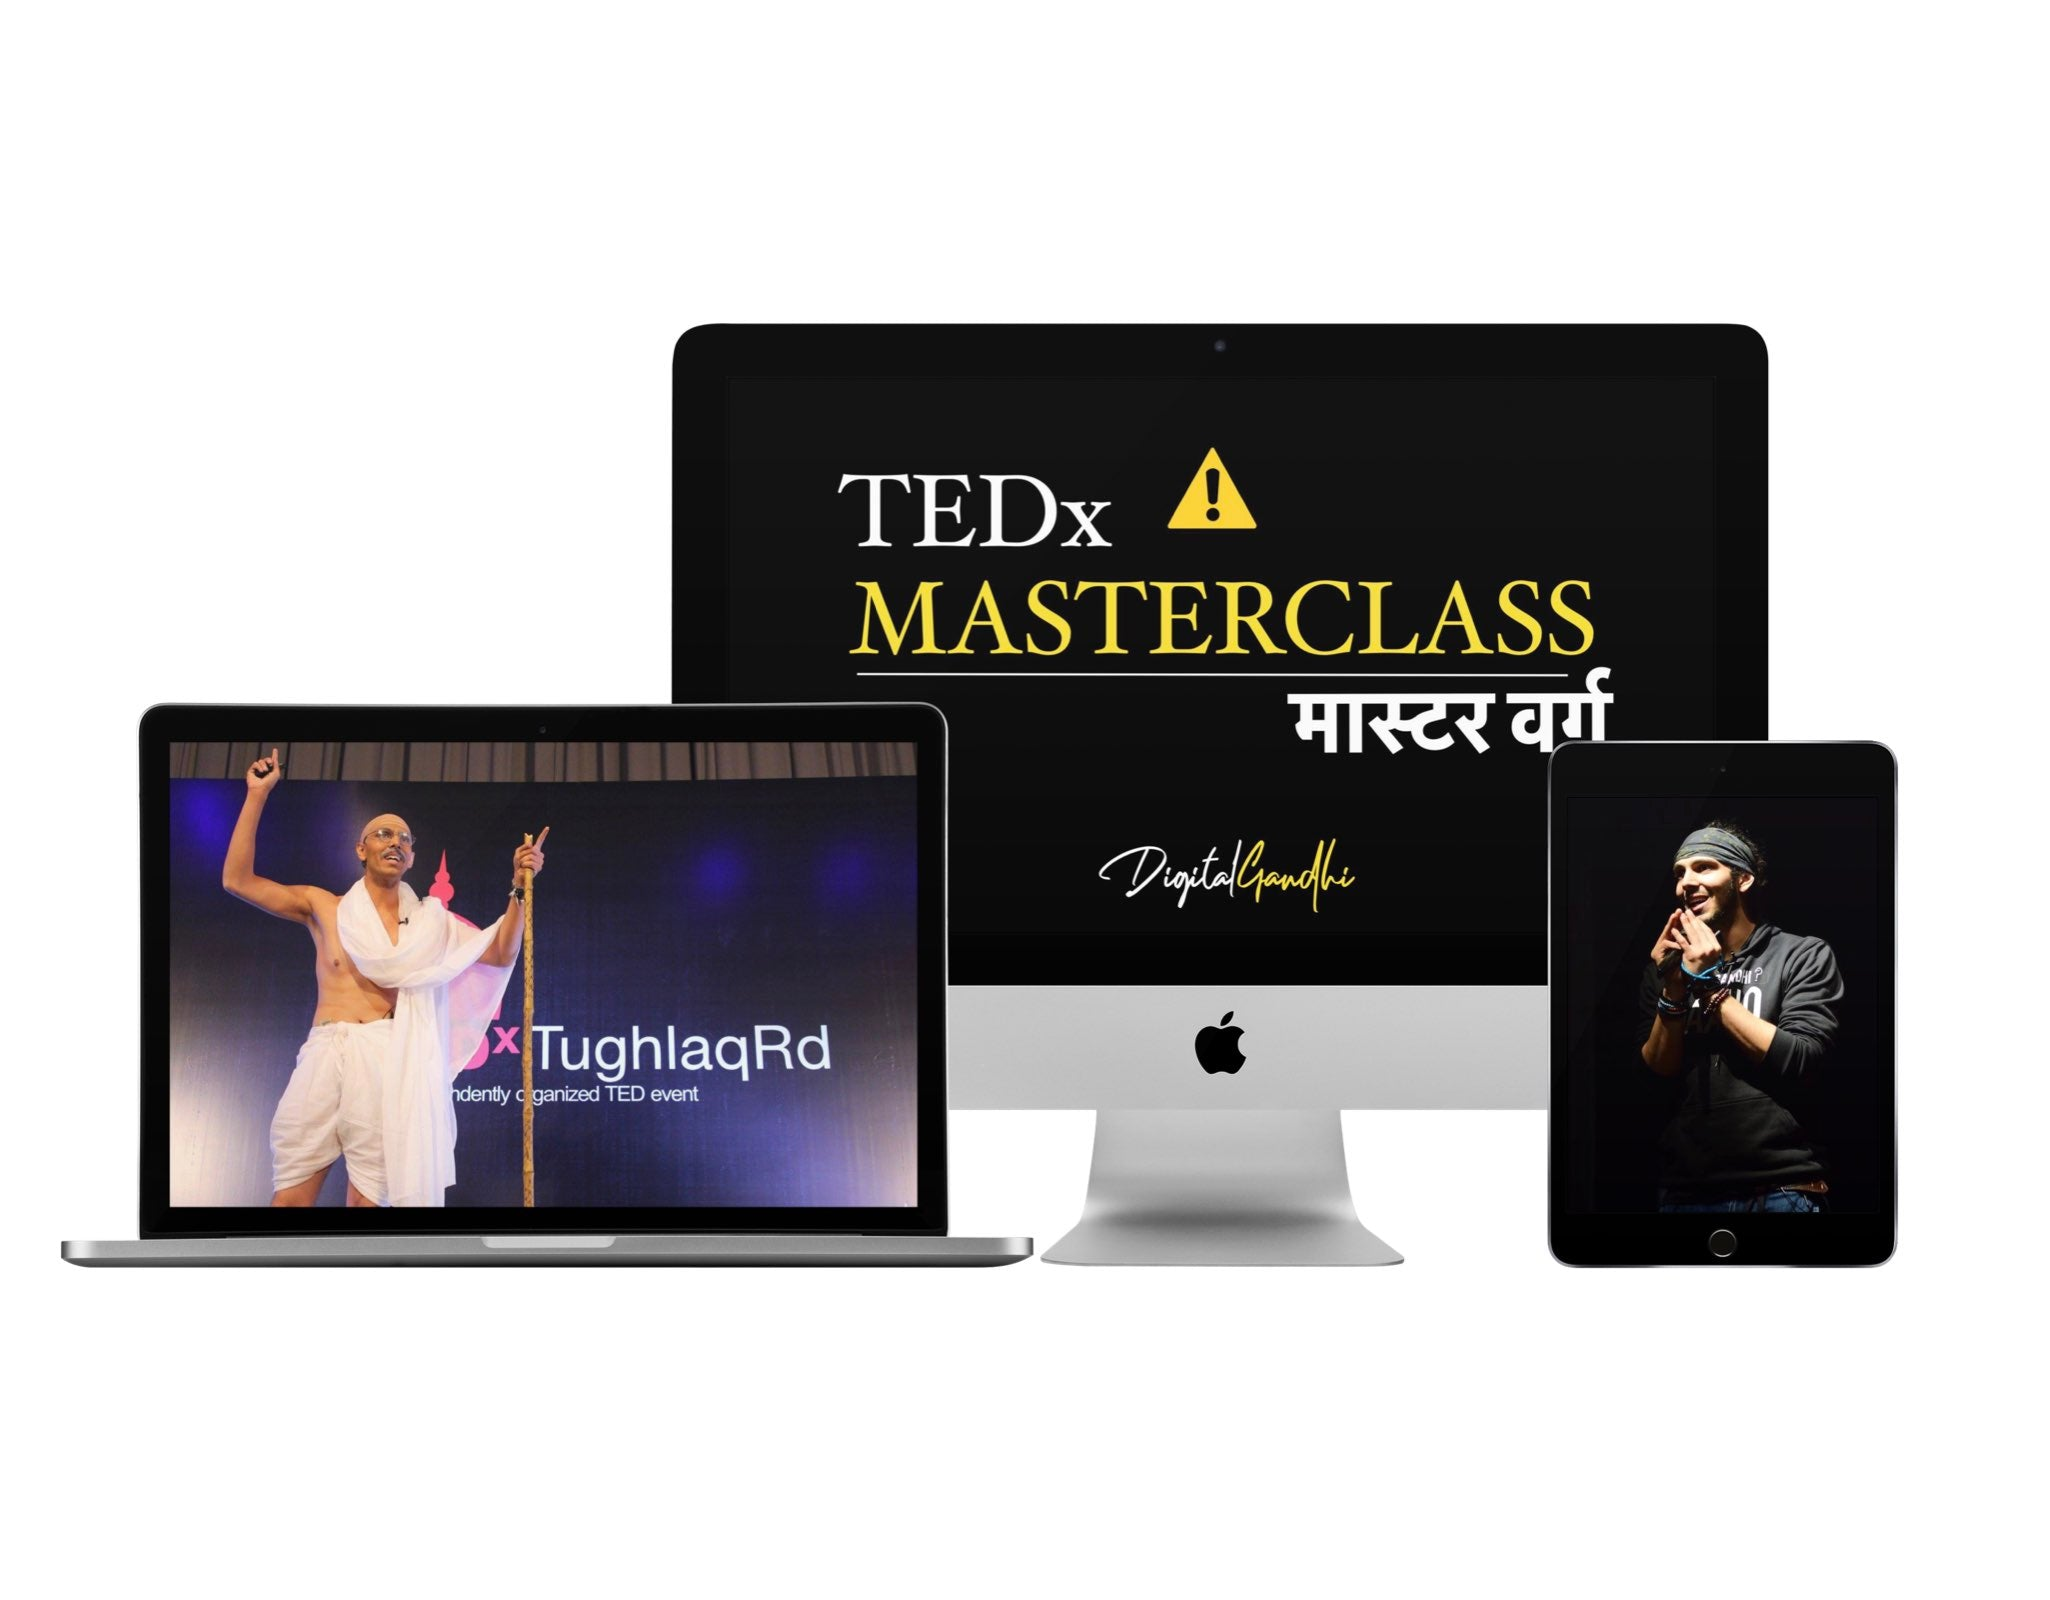 TEDx Masterclass by Digital Gandhi